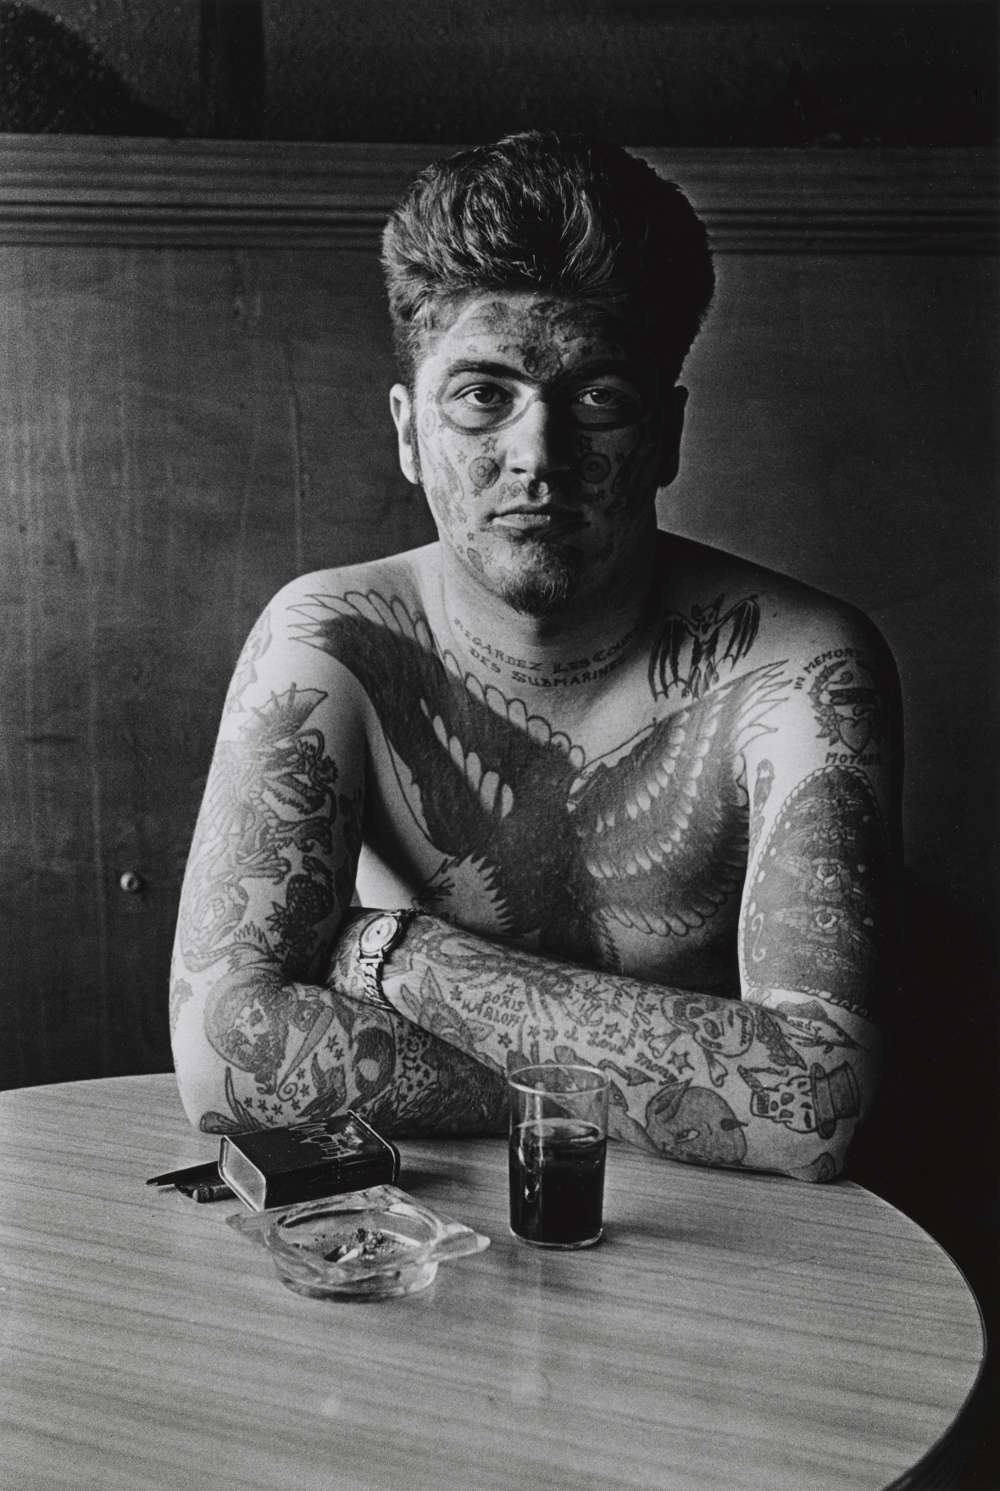 Jack Dracula at a bar, New London, Conn. 1961. 9 3/4 × 6 5/8 in. (24.8 × 16.9 cm) Promised Gift of Doon Arbus and Amy Arbus, 2007. Courtesy The Metropolitan Museum of Art, New York. Copyright © The Estate of Diane Arbus, LLC. All Rights Reserved